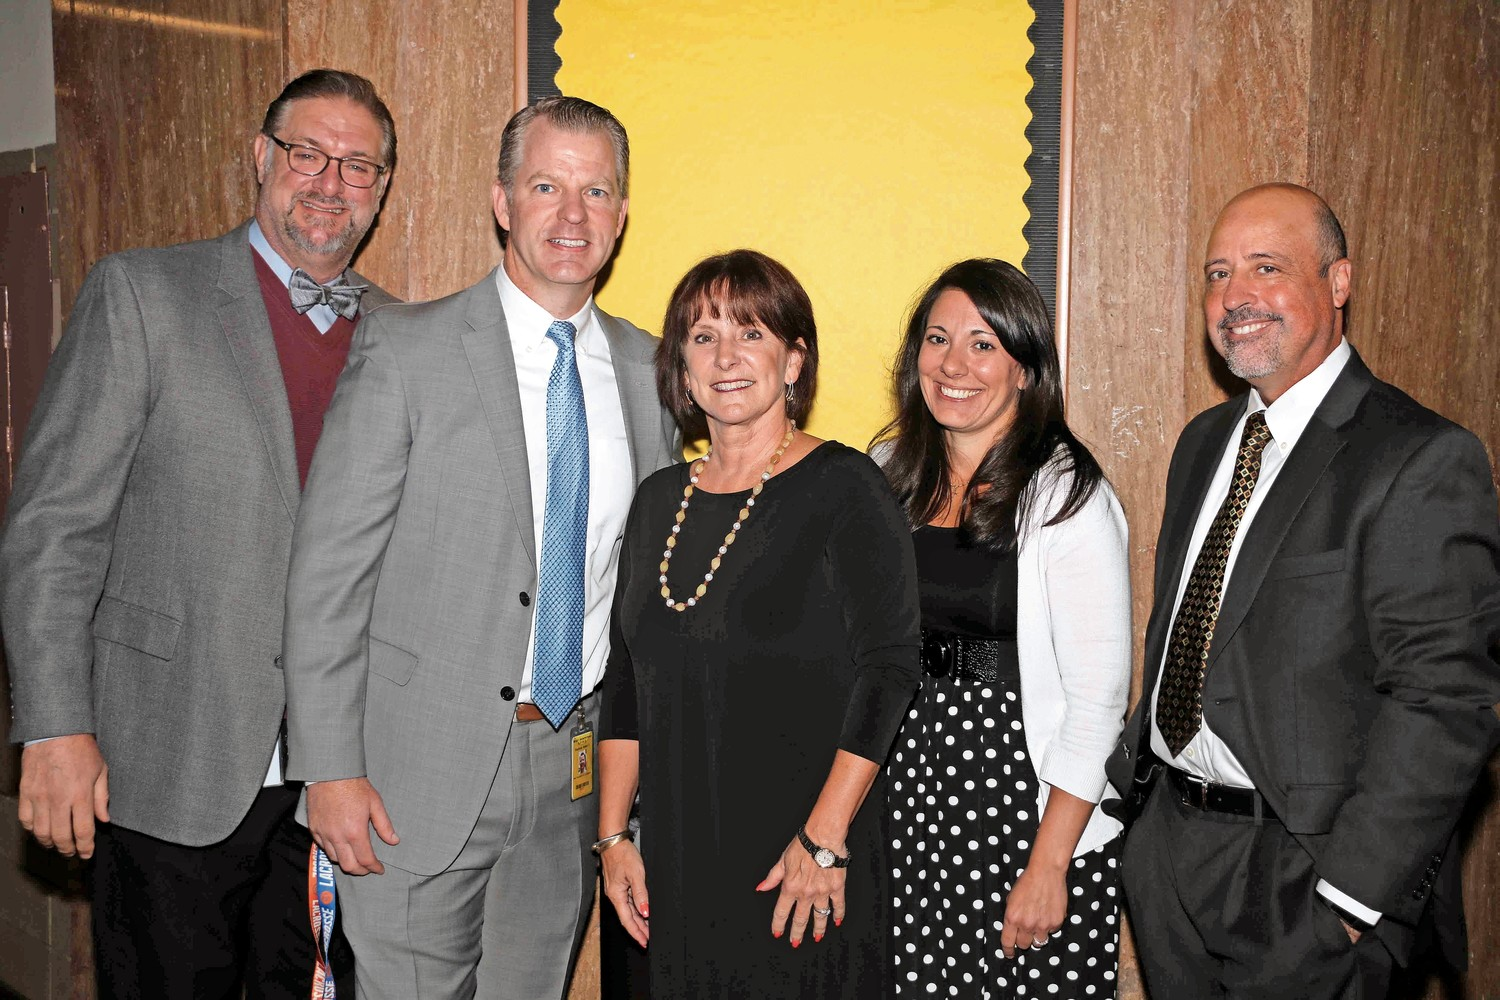 Assistant Superintendent for Curriculum and Instruction Daniel Rehman, far left, West Hempstead High Assistant Principal Adam Hopkins, Superintendent Patricia Sullivan-Kriss and West Hempstead High School Assistant Principal Michele Lambo-Maron congratulated Escobar on his retirement.